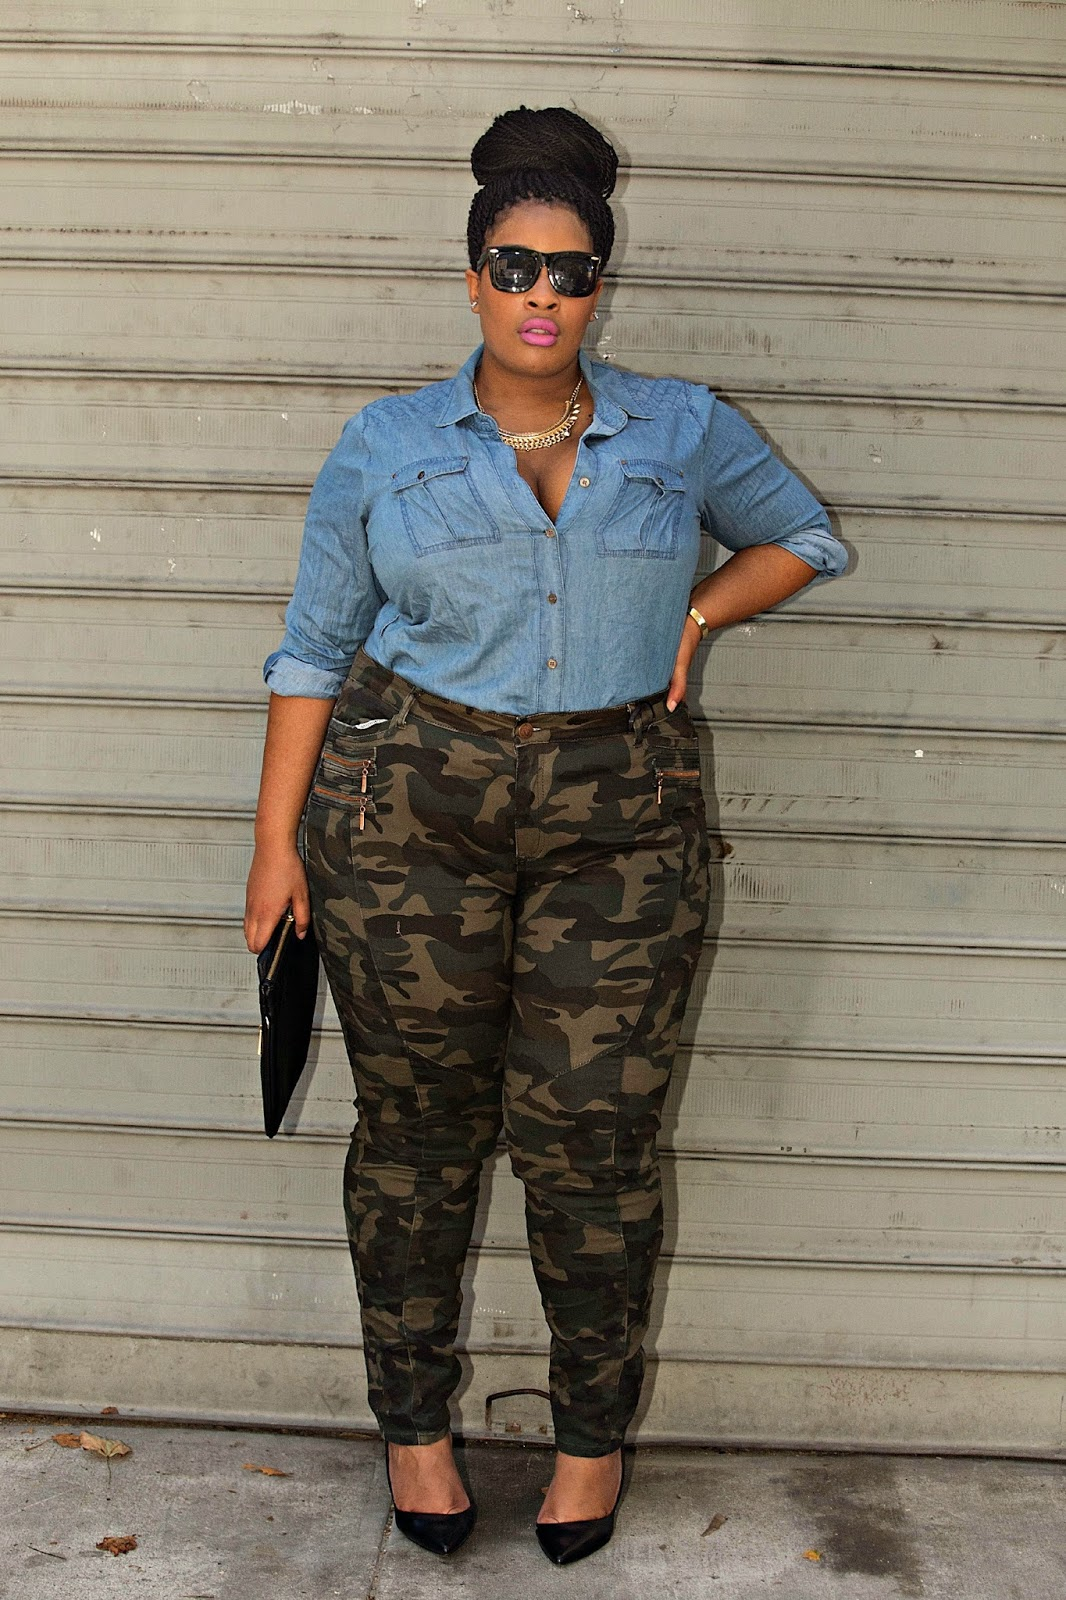 Shop Fatigues Army Navy for the Womens Military Fashion Collection. We will style you out in womens casual street wear military fashion from head to toe with accessories and bags.